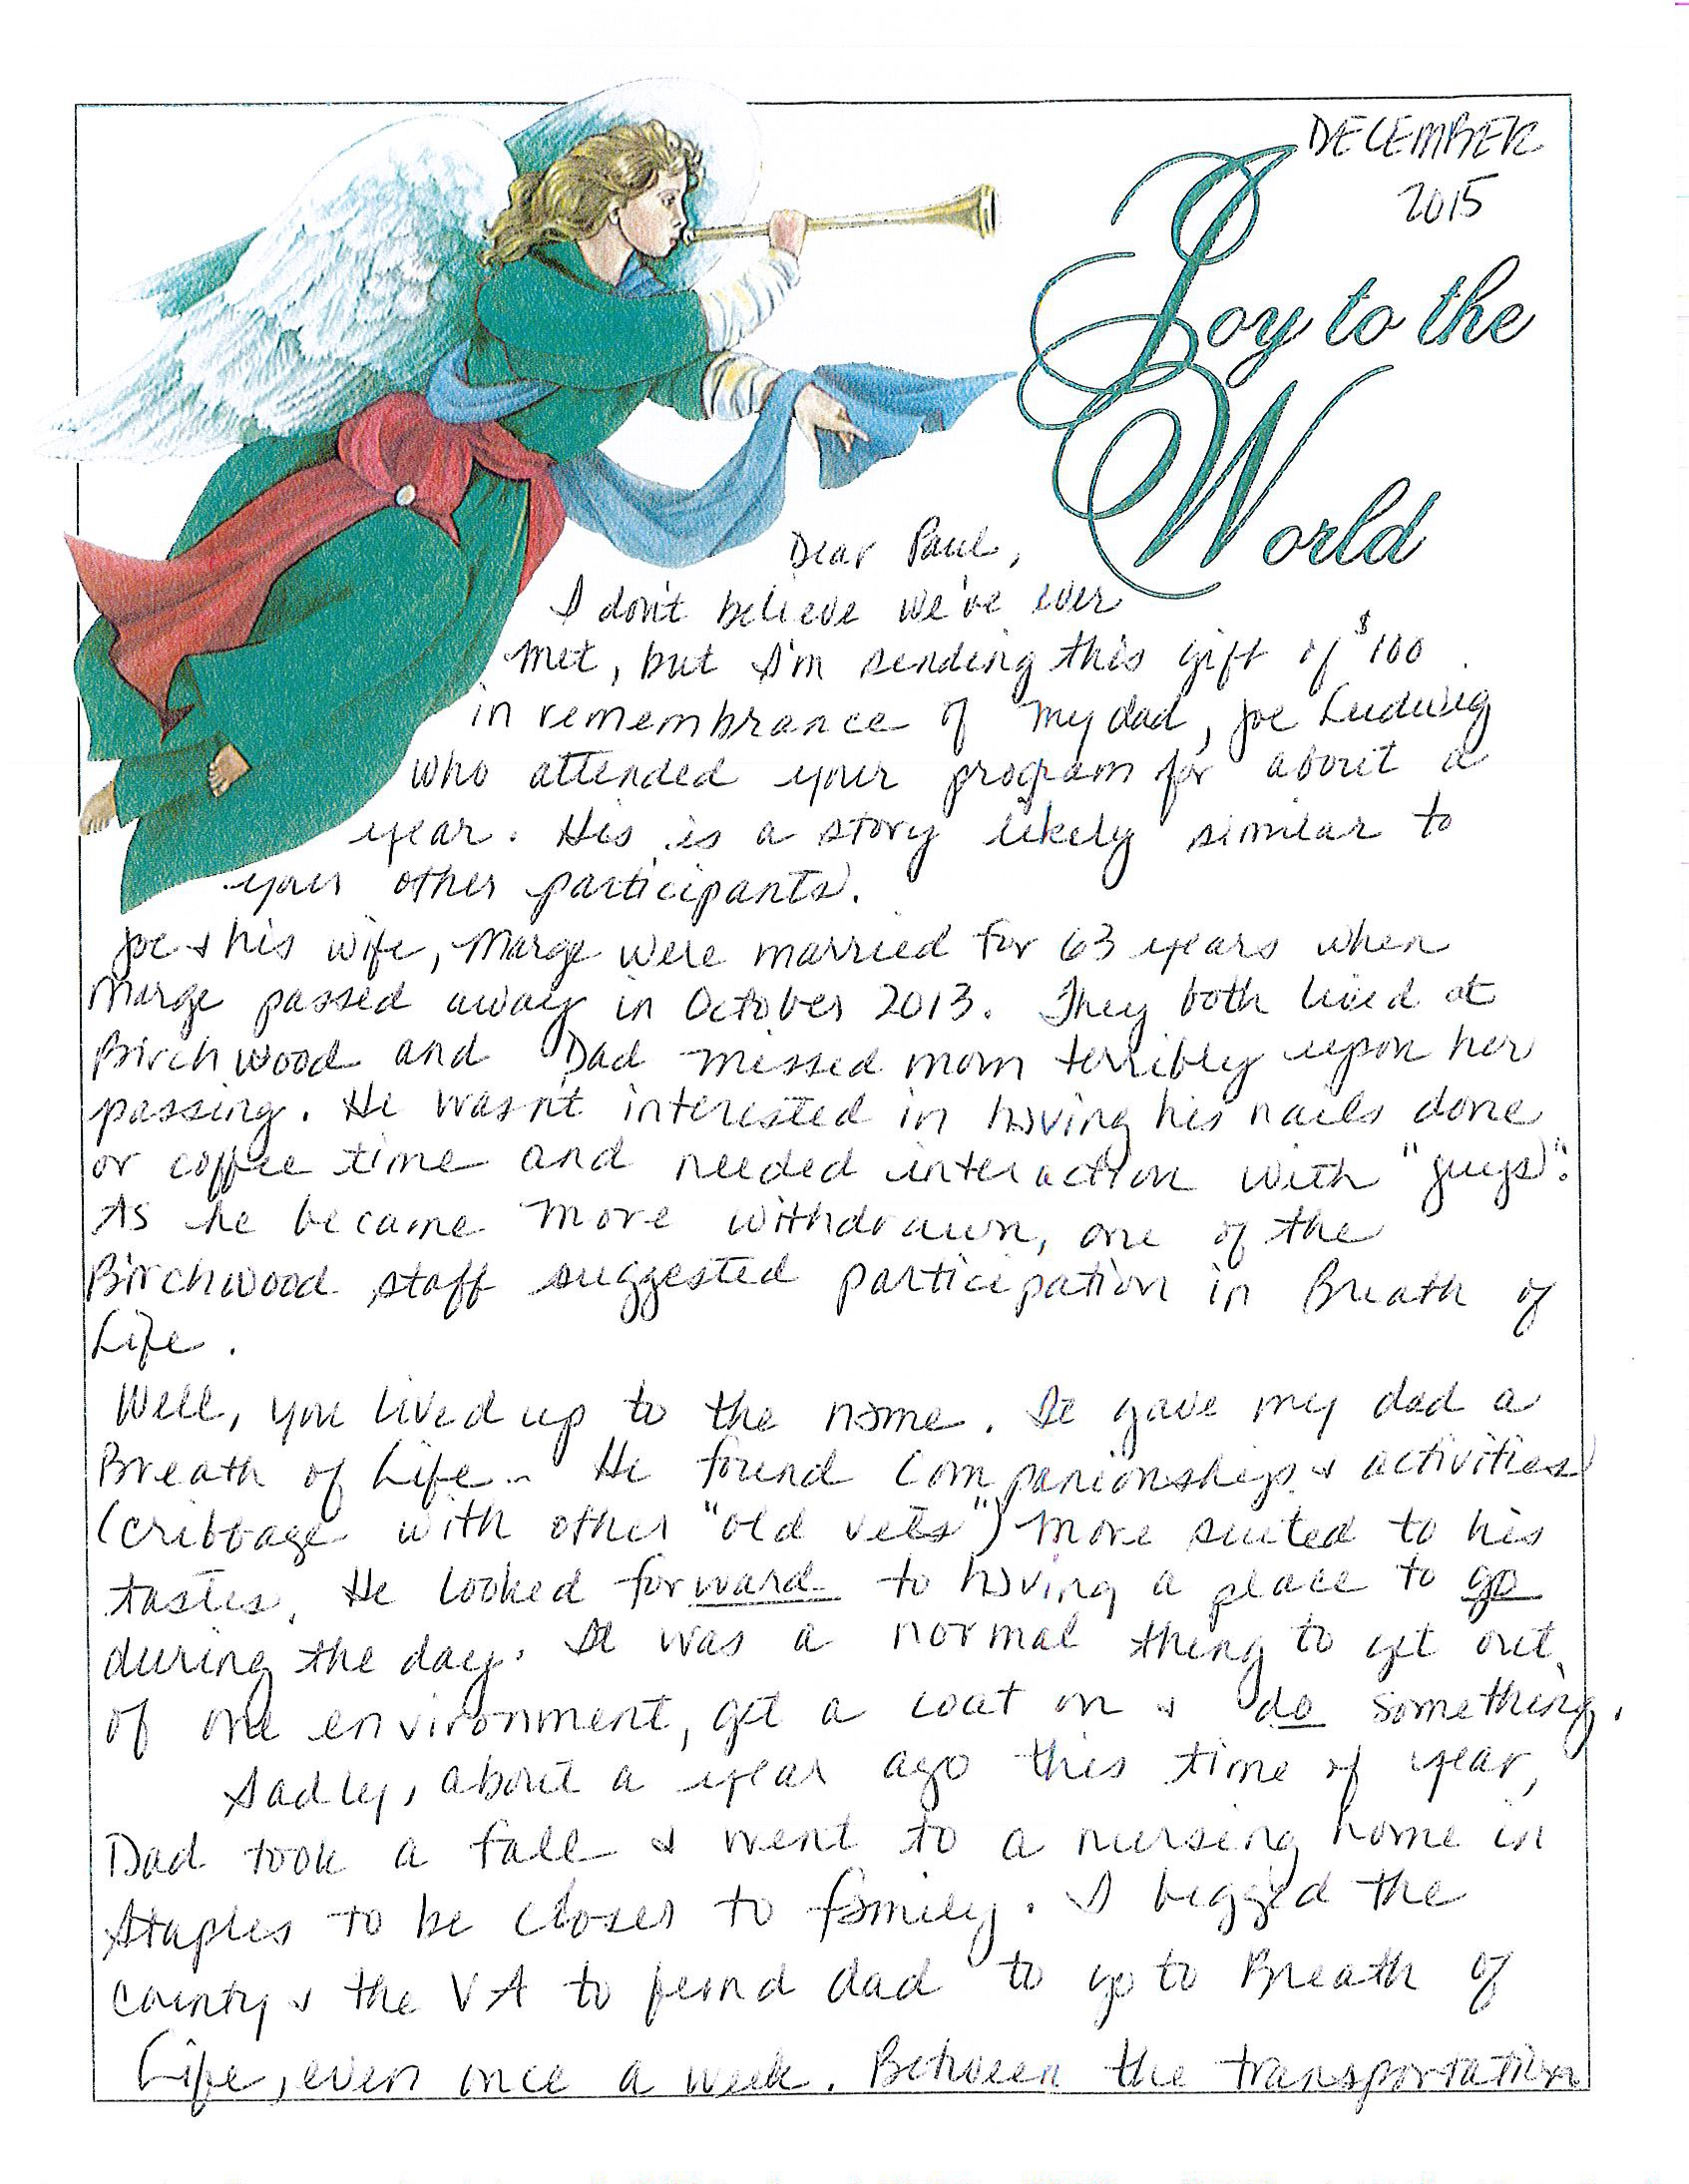 Picture of letter written by daughter of man who used Breath of Life Adult Day Service